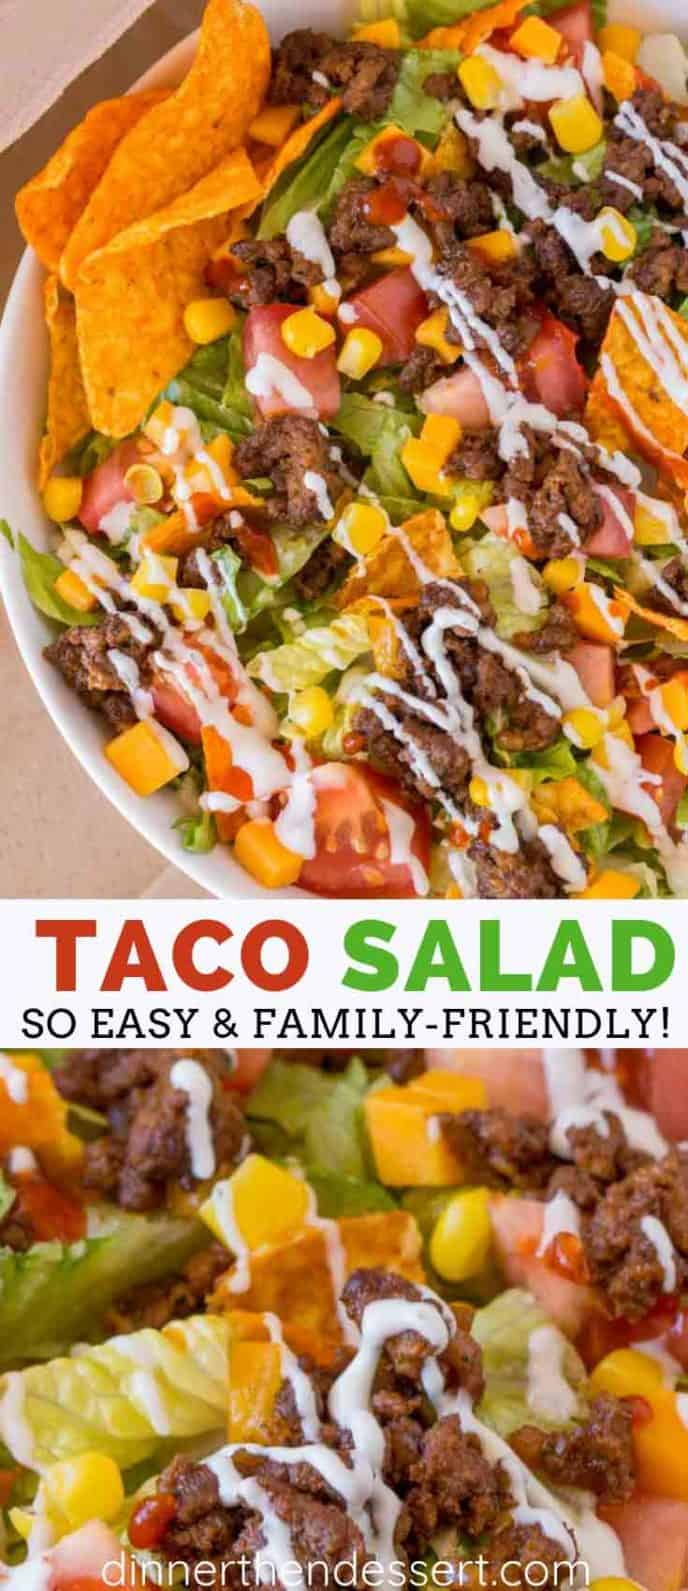 Taco Salad with ground beef, corn, tomatoes, and salsa